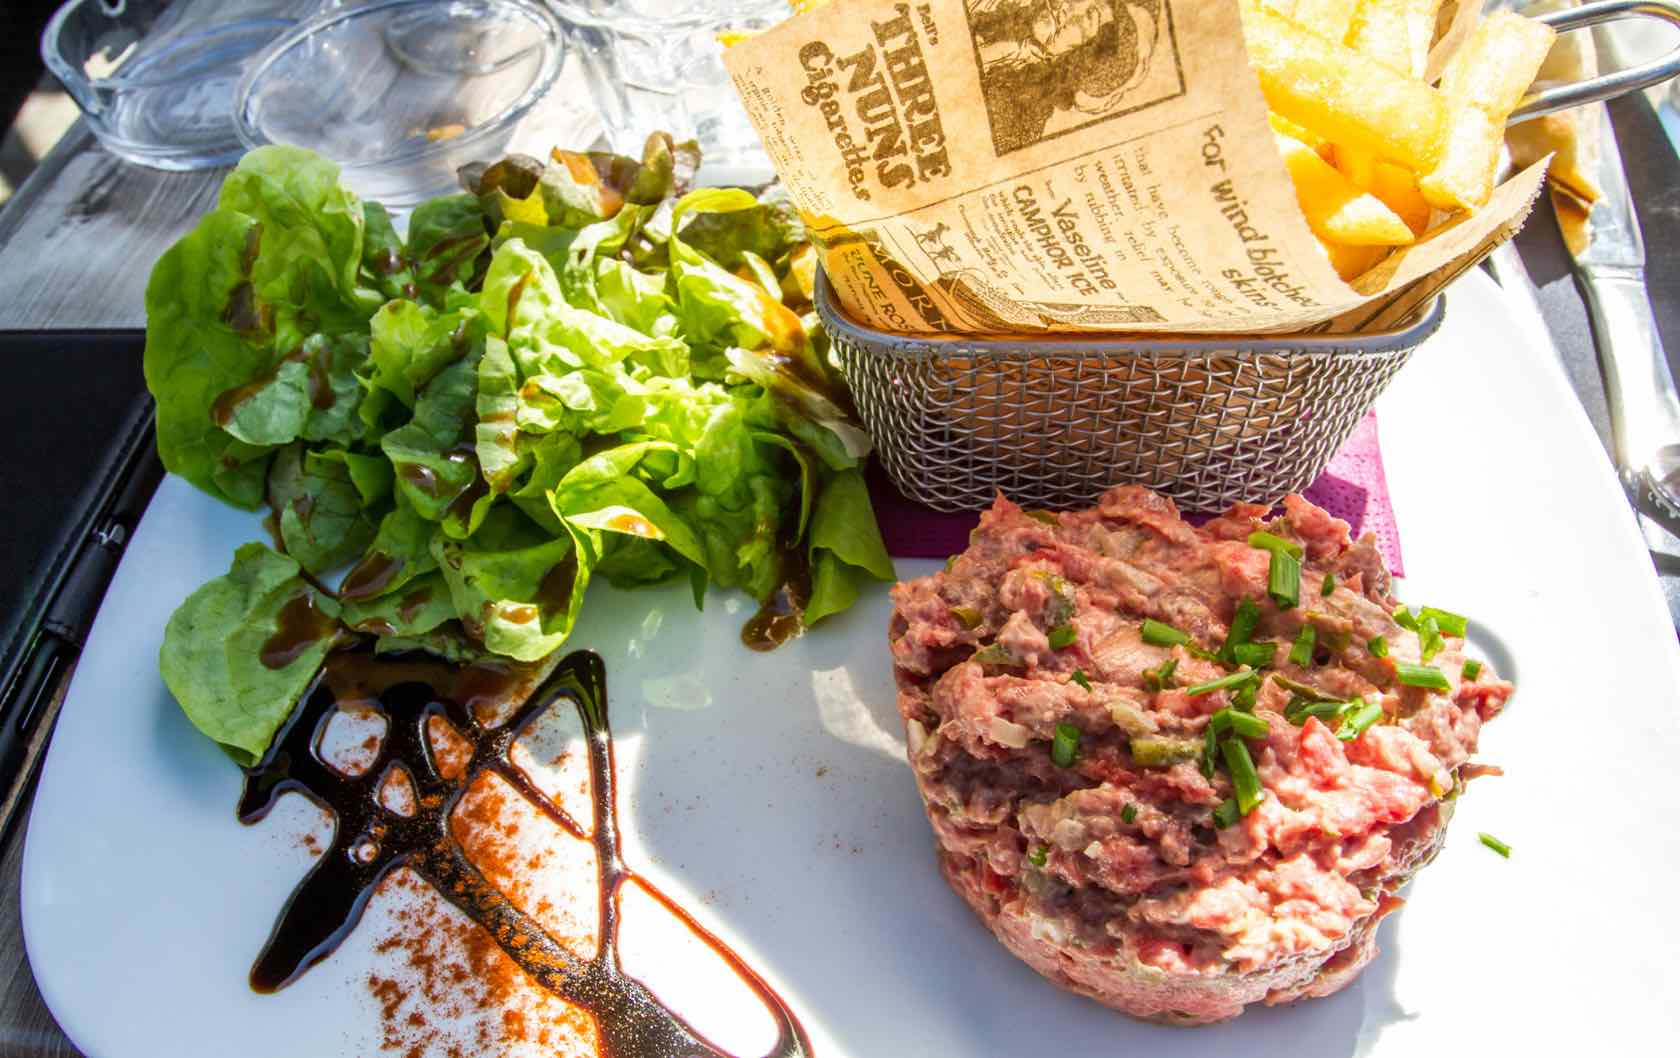 Classic Savory French Dishes Tartare de Boeuf